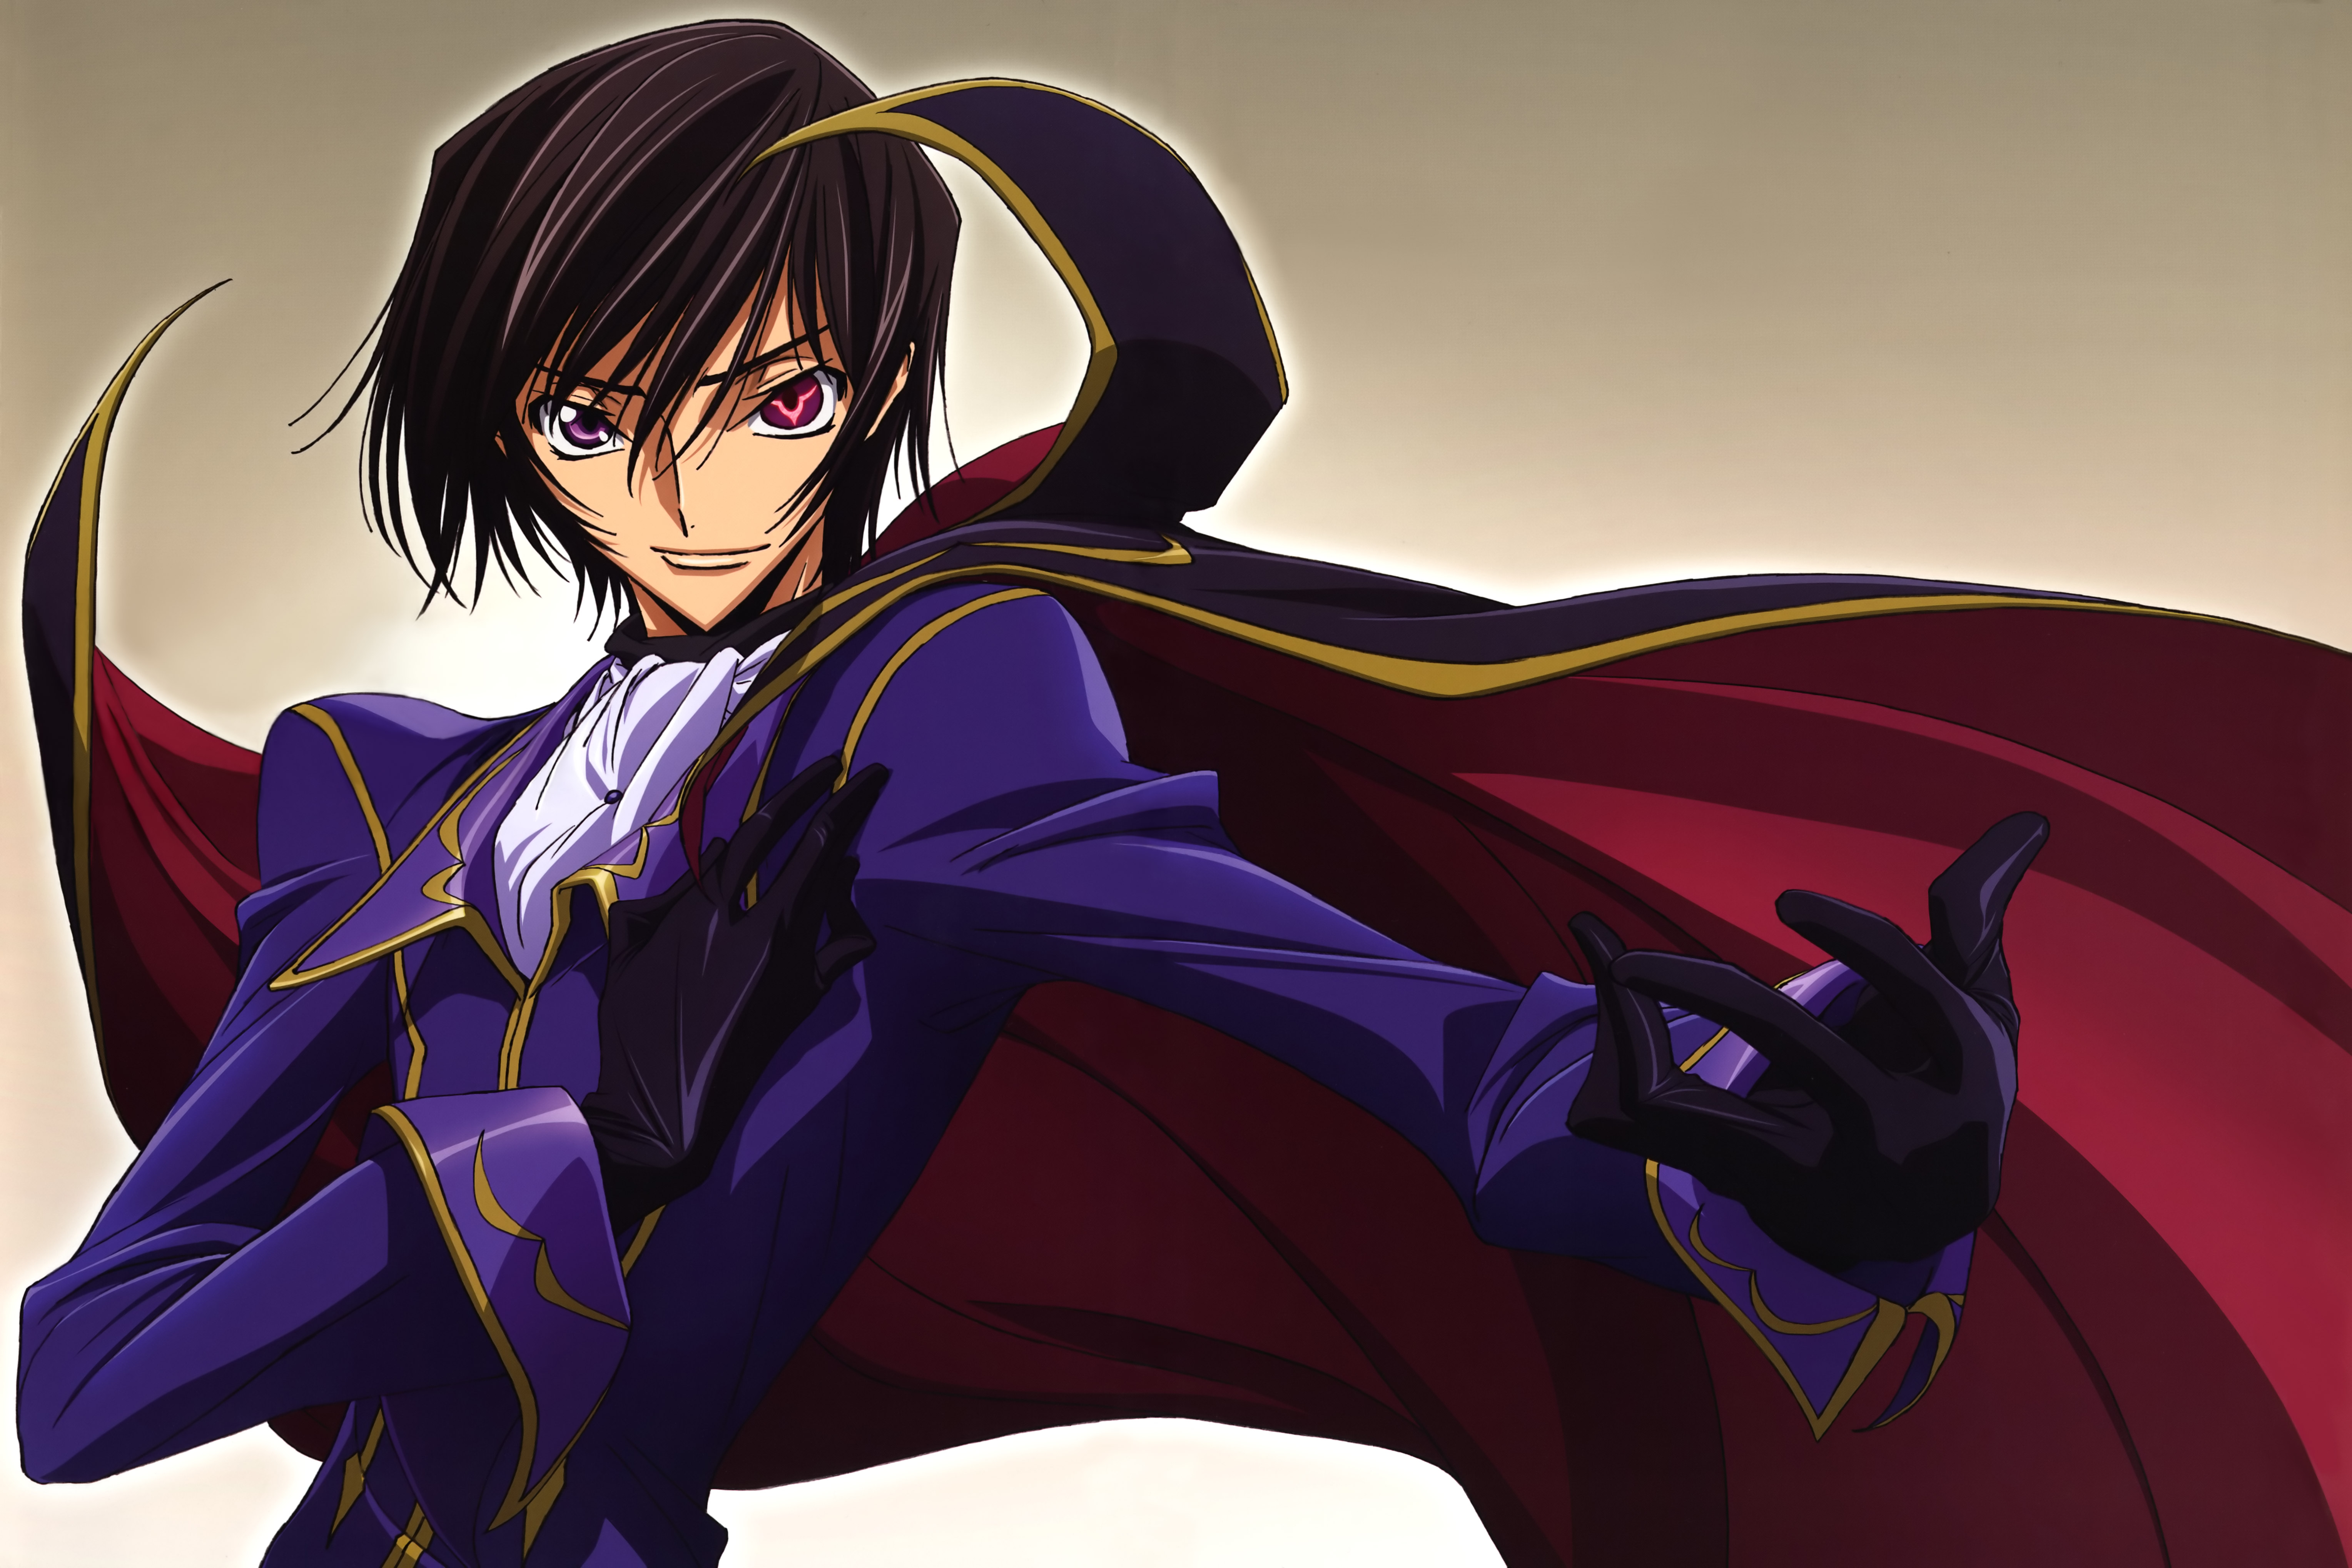 geass symbol code geass hangyaku no lelouch zerochan. Black Bedroom Furniture Sets. Home Design Ideas